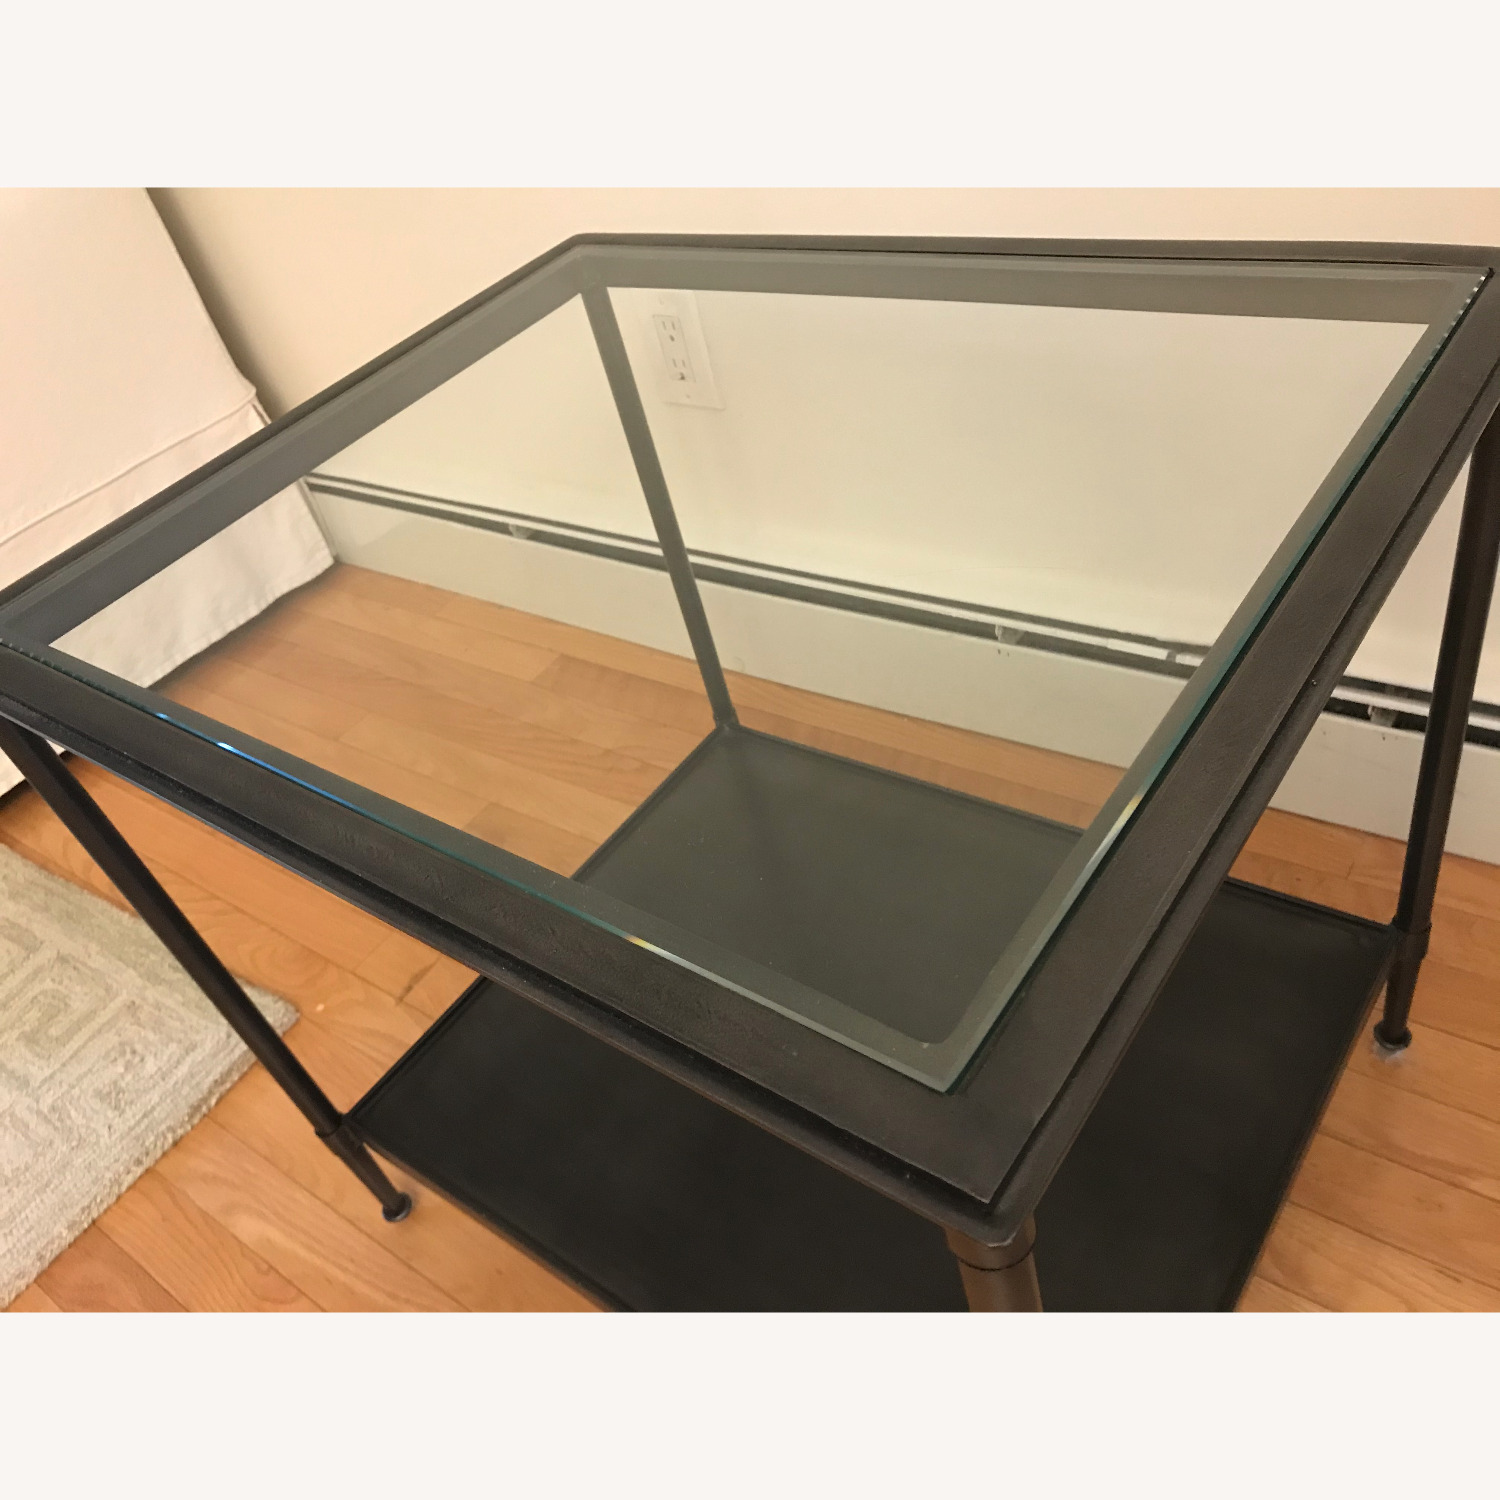 West Elm Side Table - Glass top - image-2